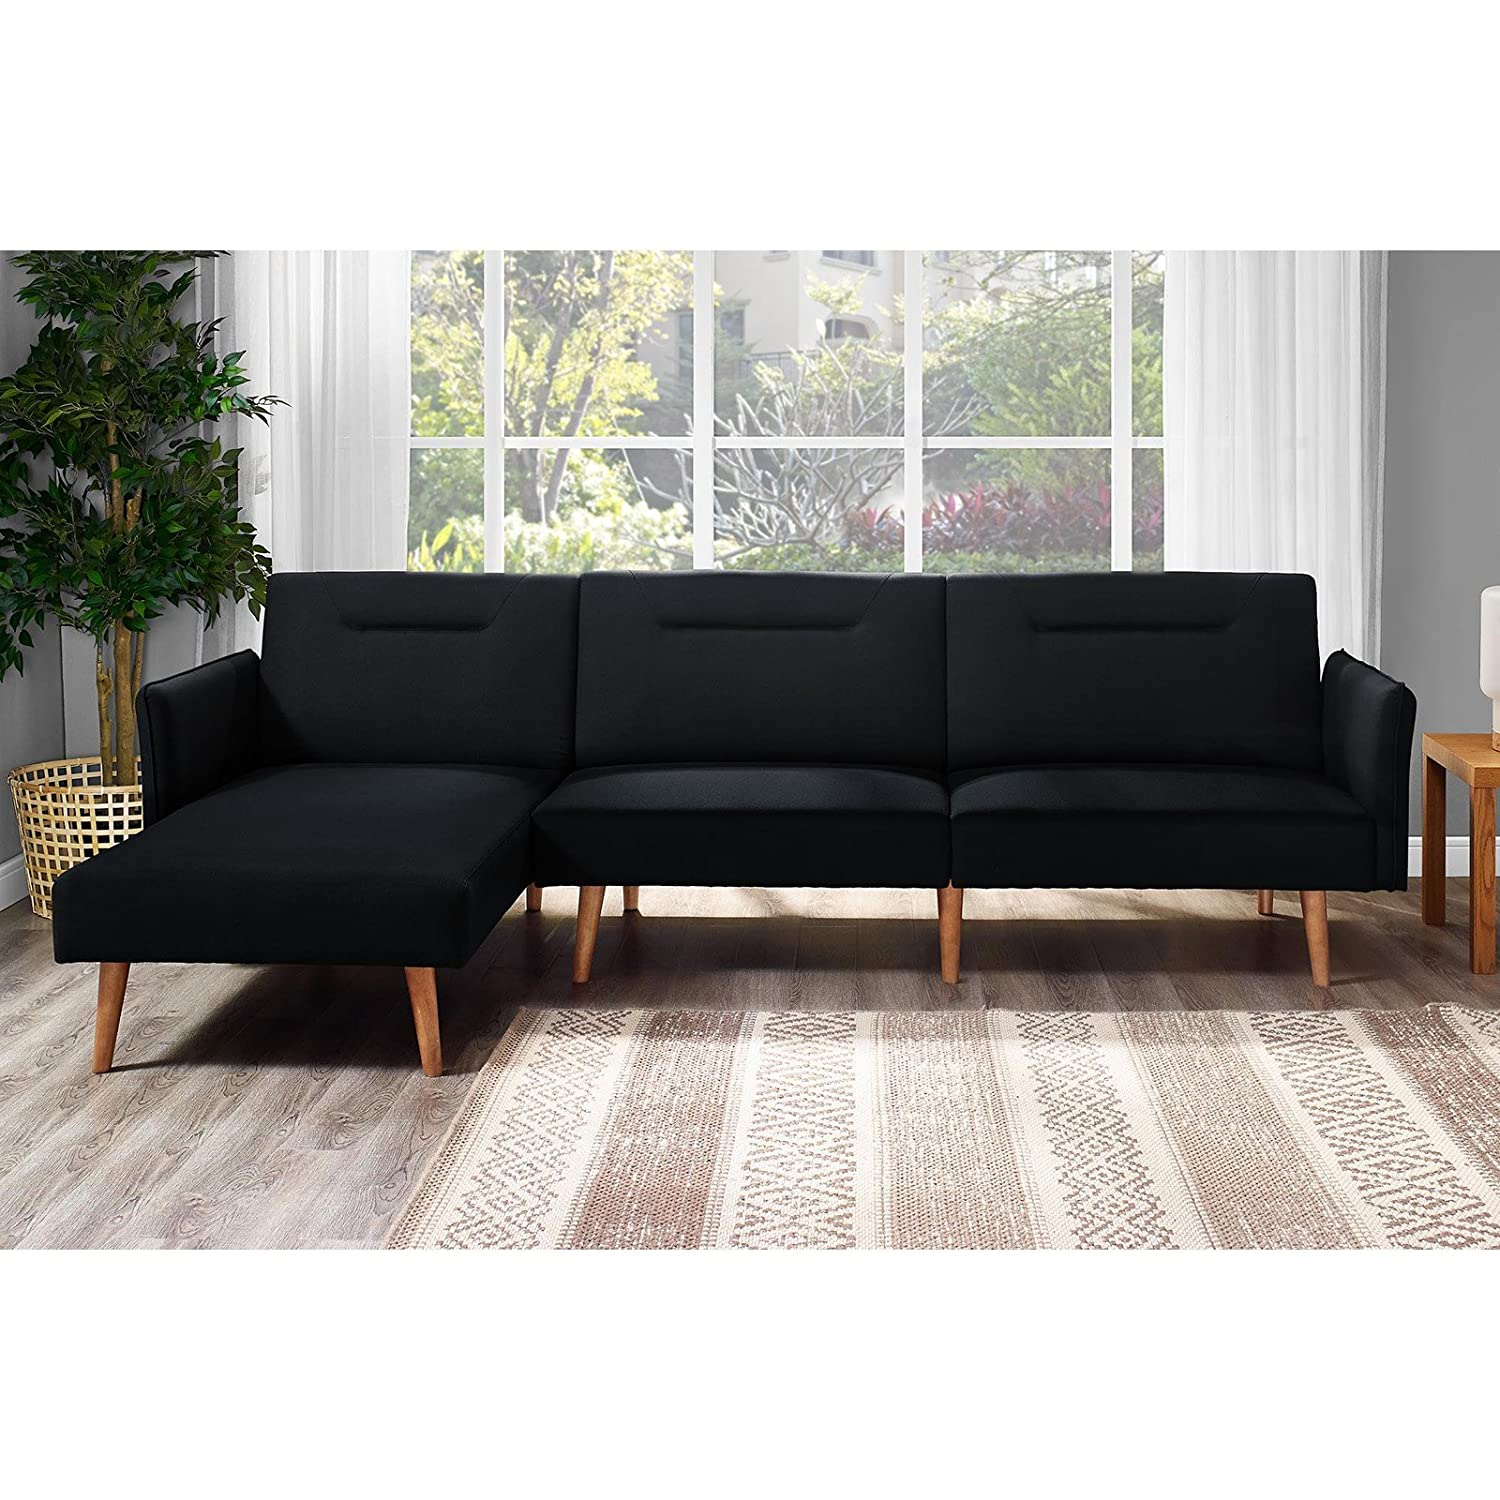 sofa today futons free shipping futon garden dhp overstock zoe bed convertible product home